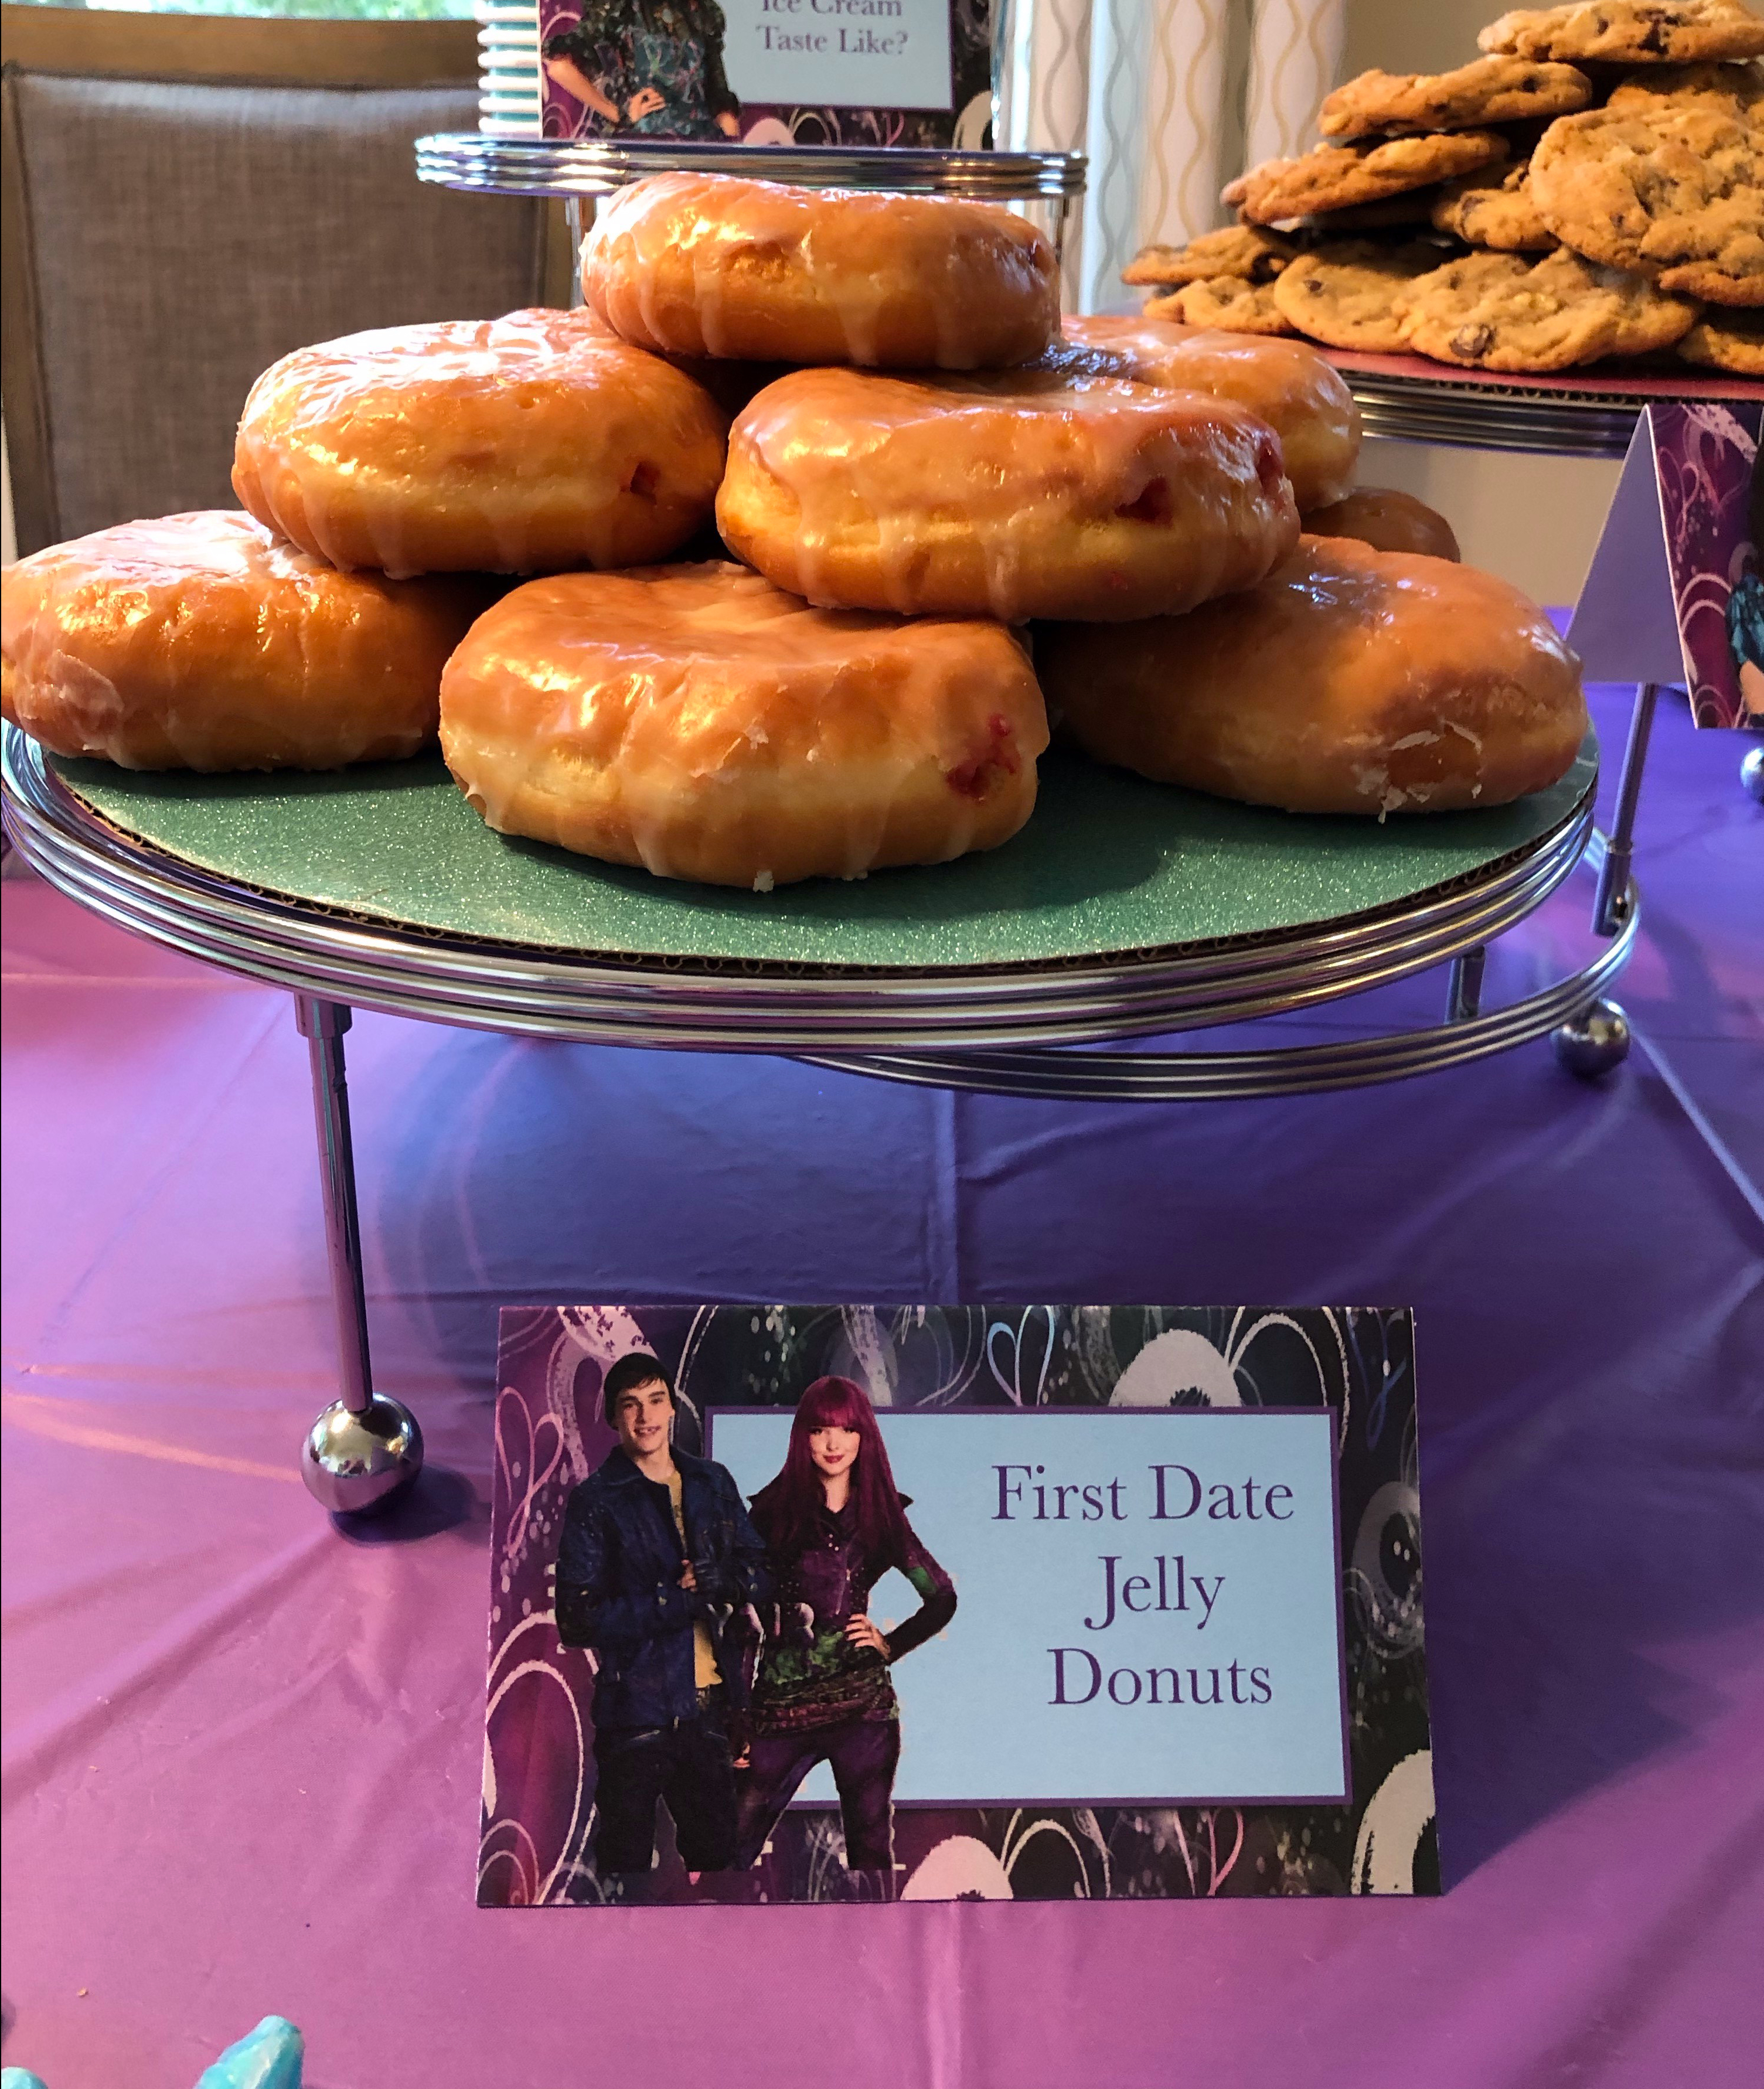 Descendants Party Food based on a scene from the movie.